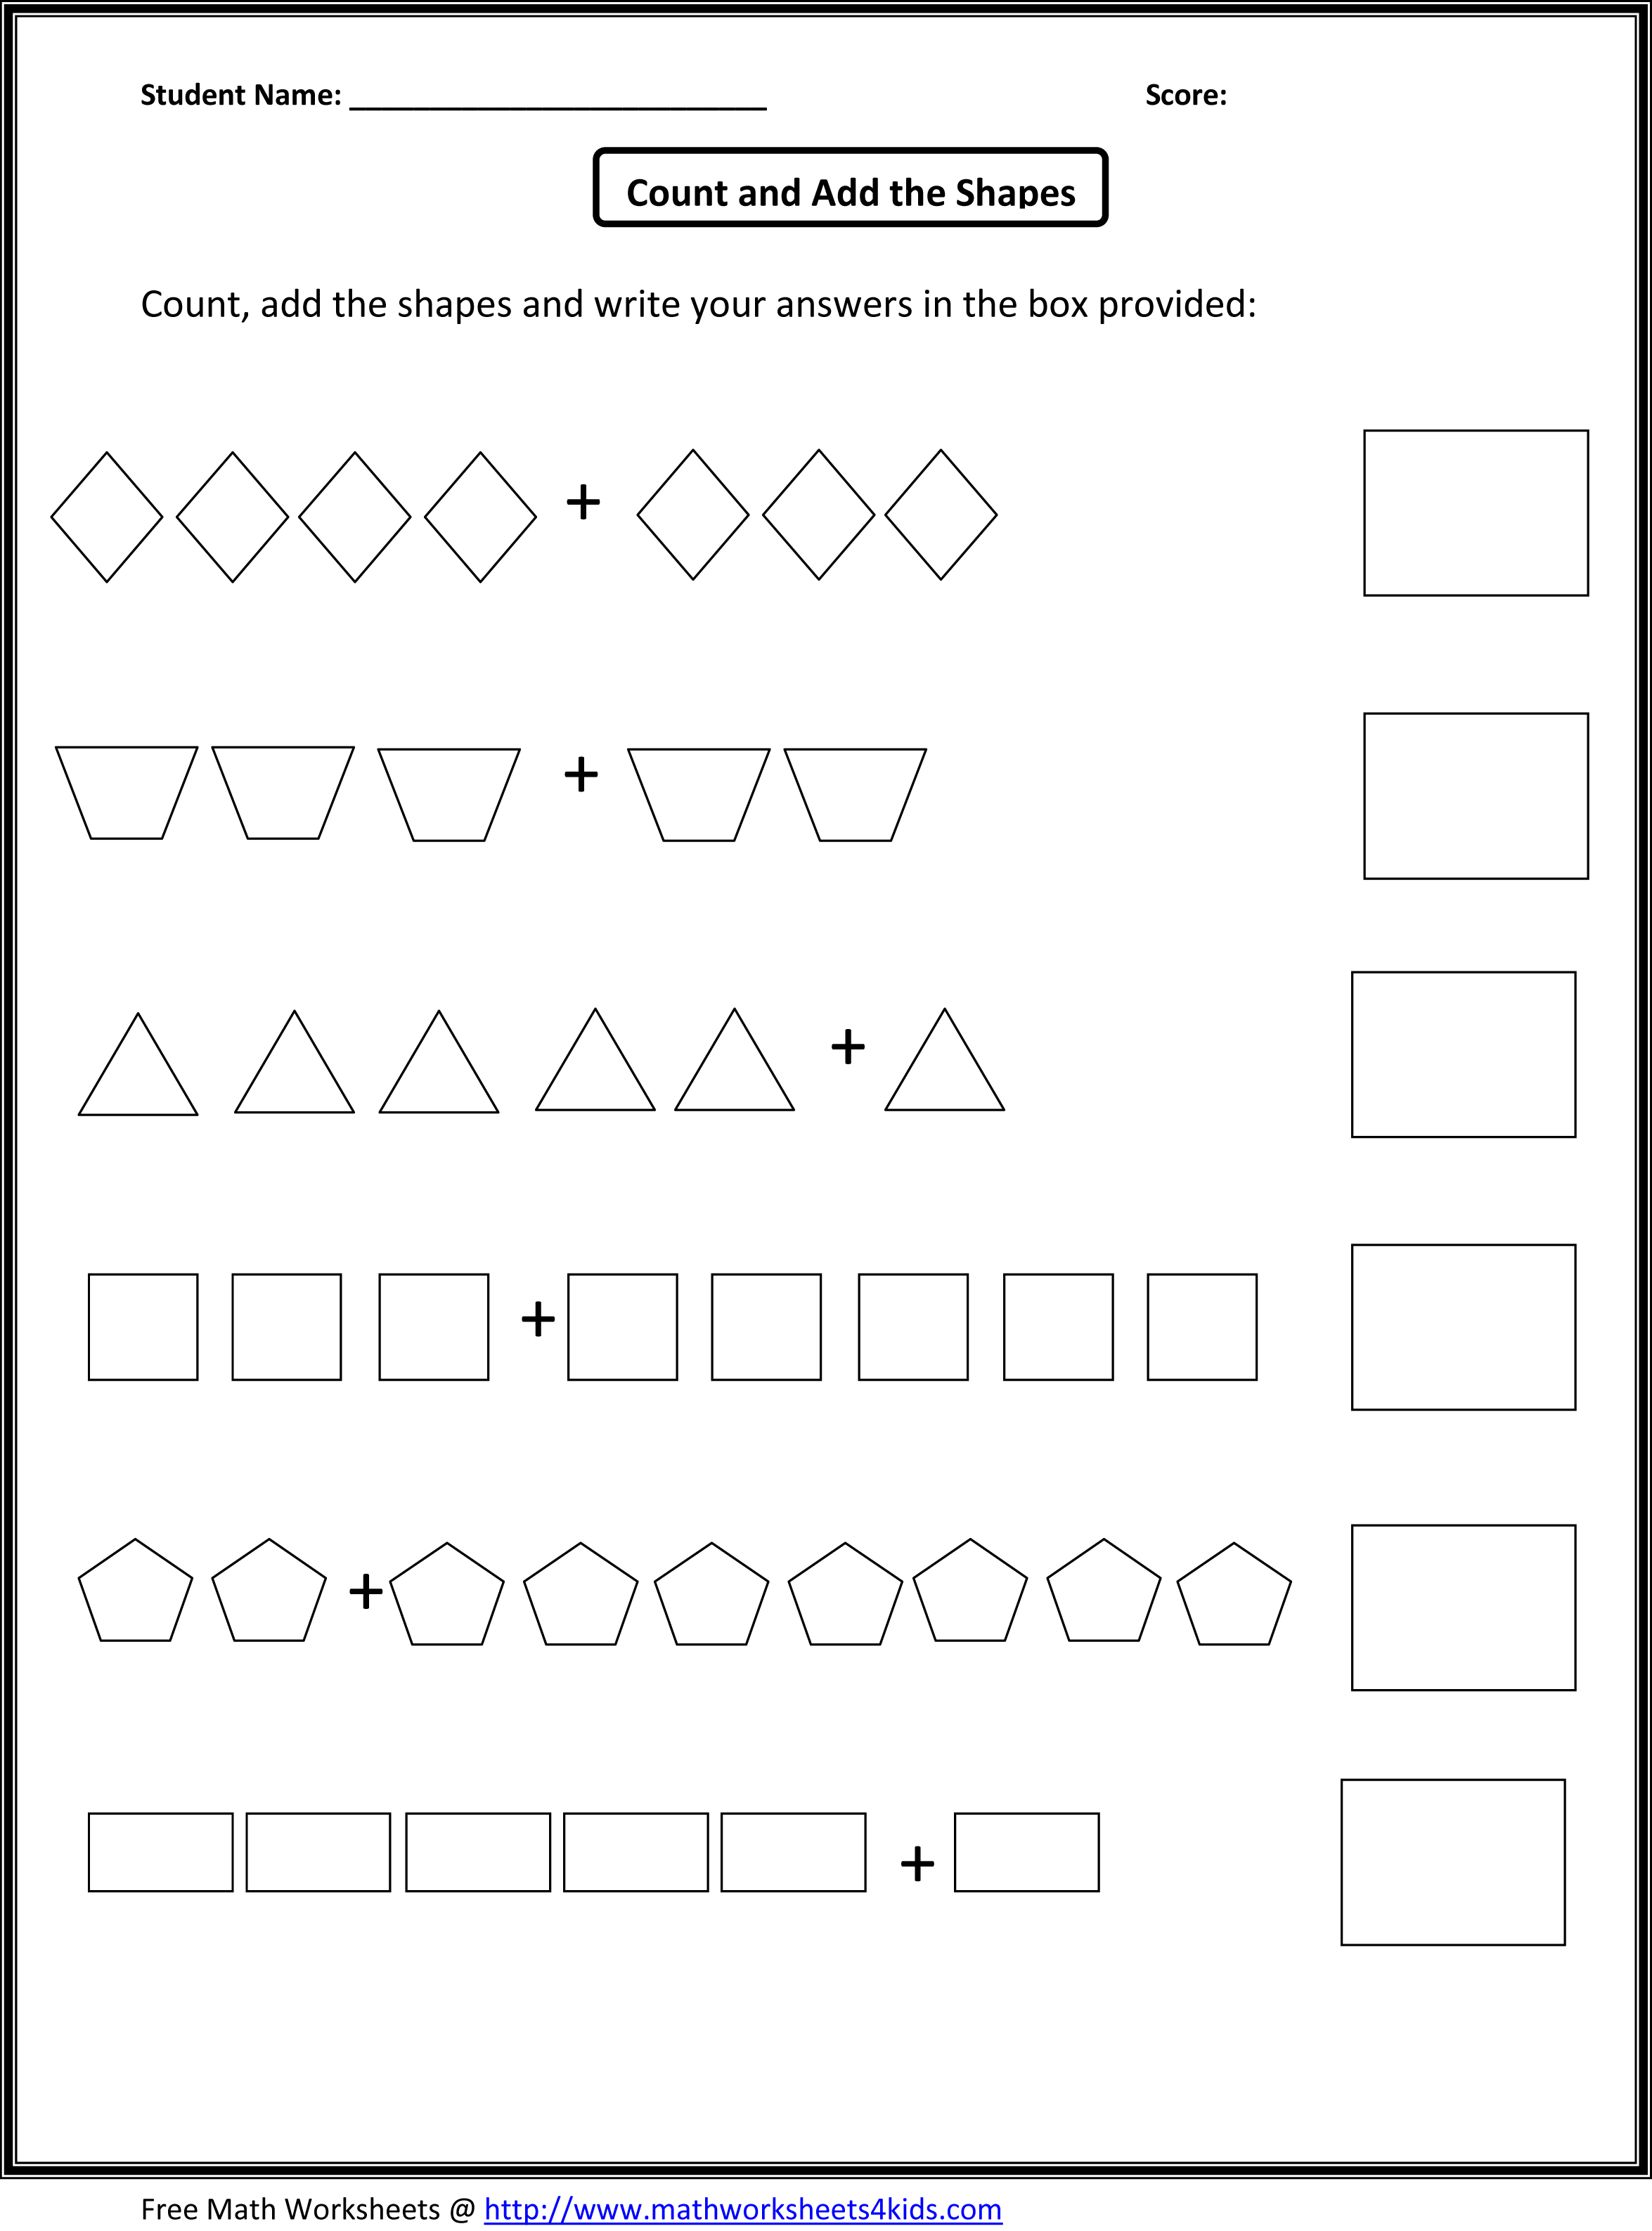 Adding Worksheets For Kindergarten